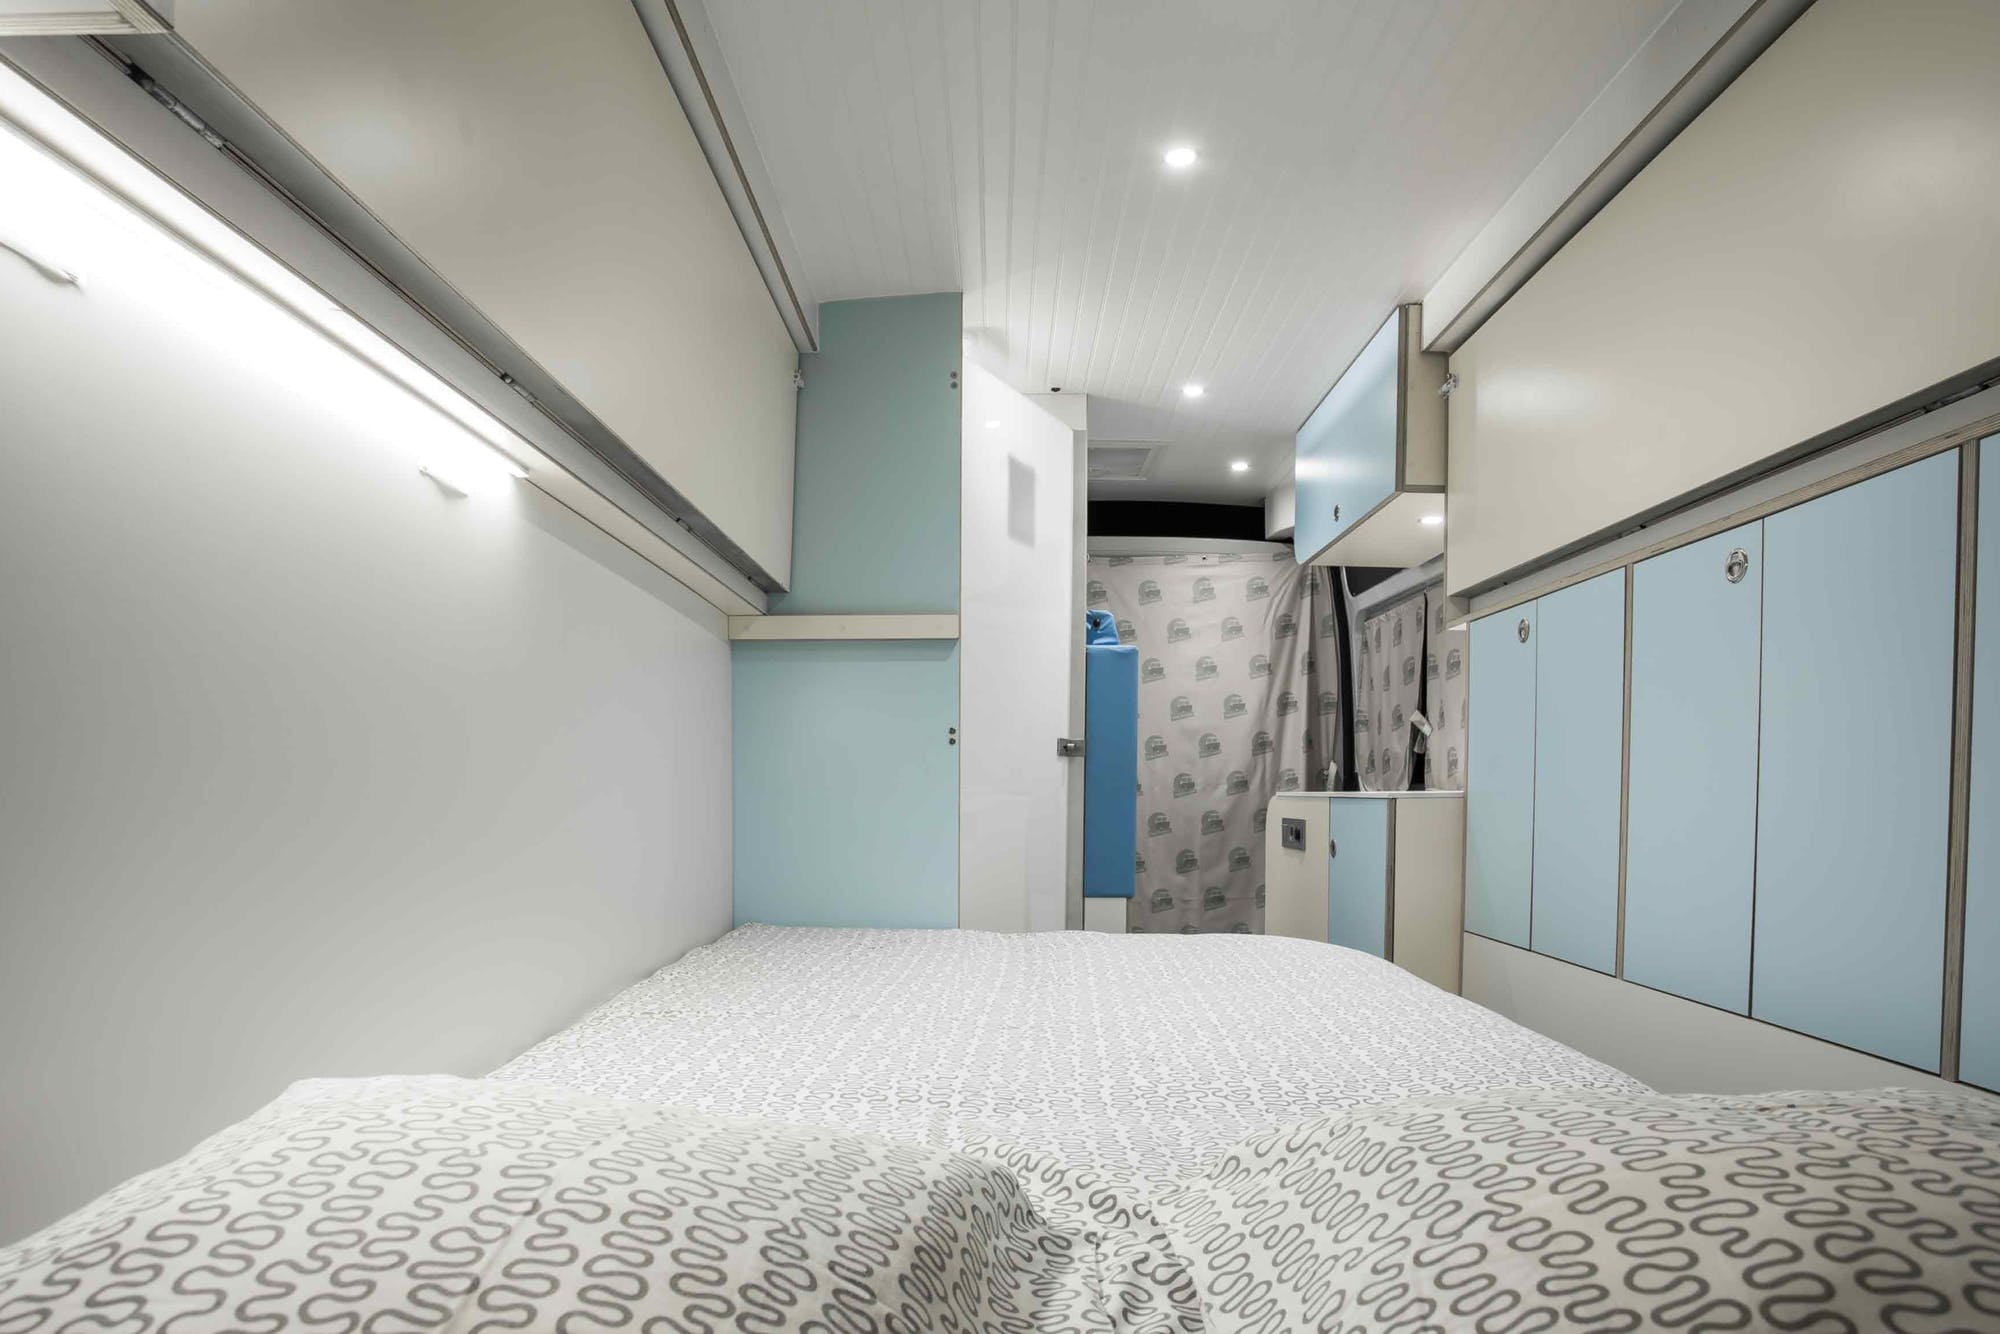 Interior view from the Motorhome Model's double bed